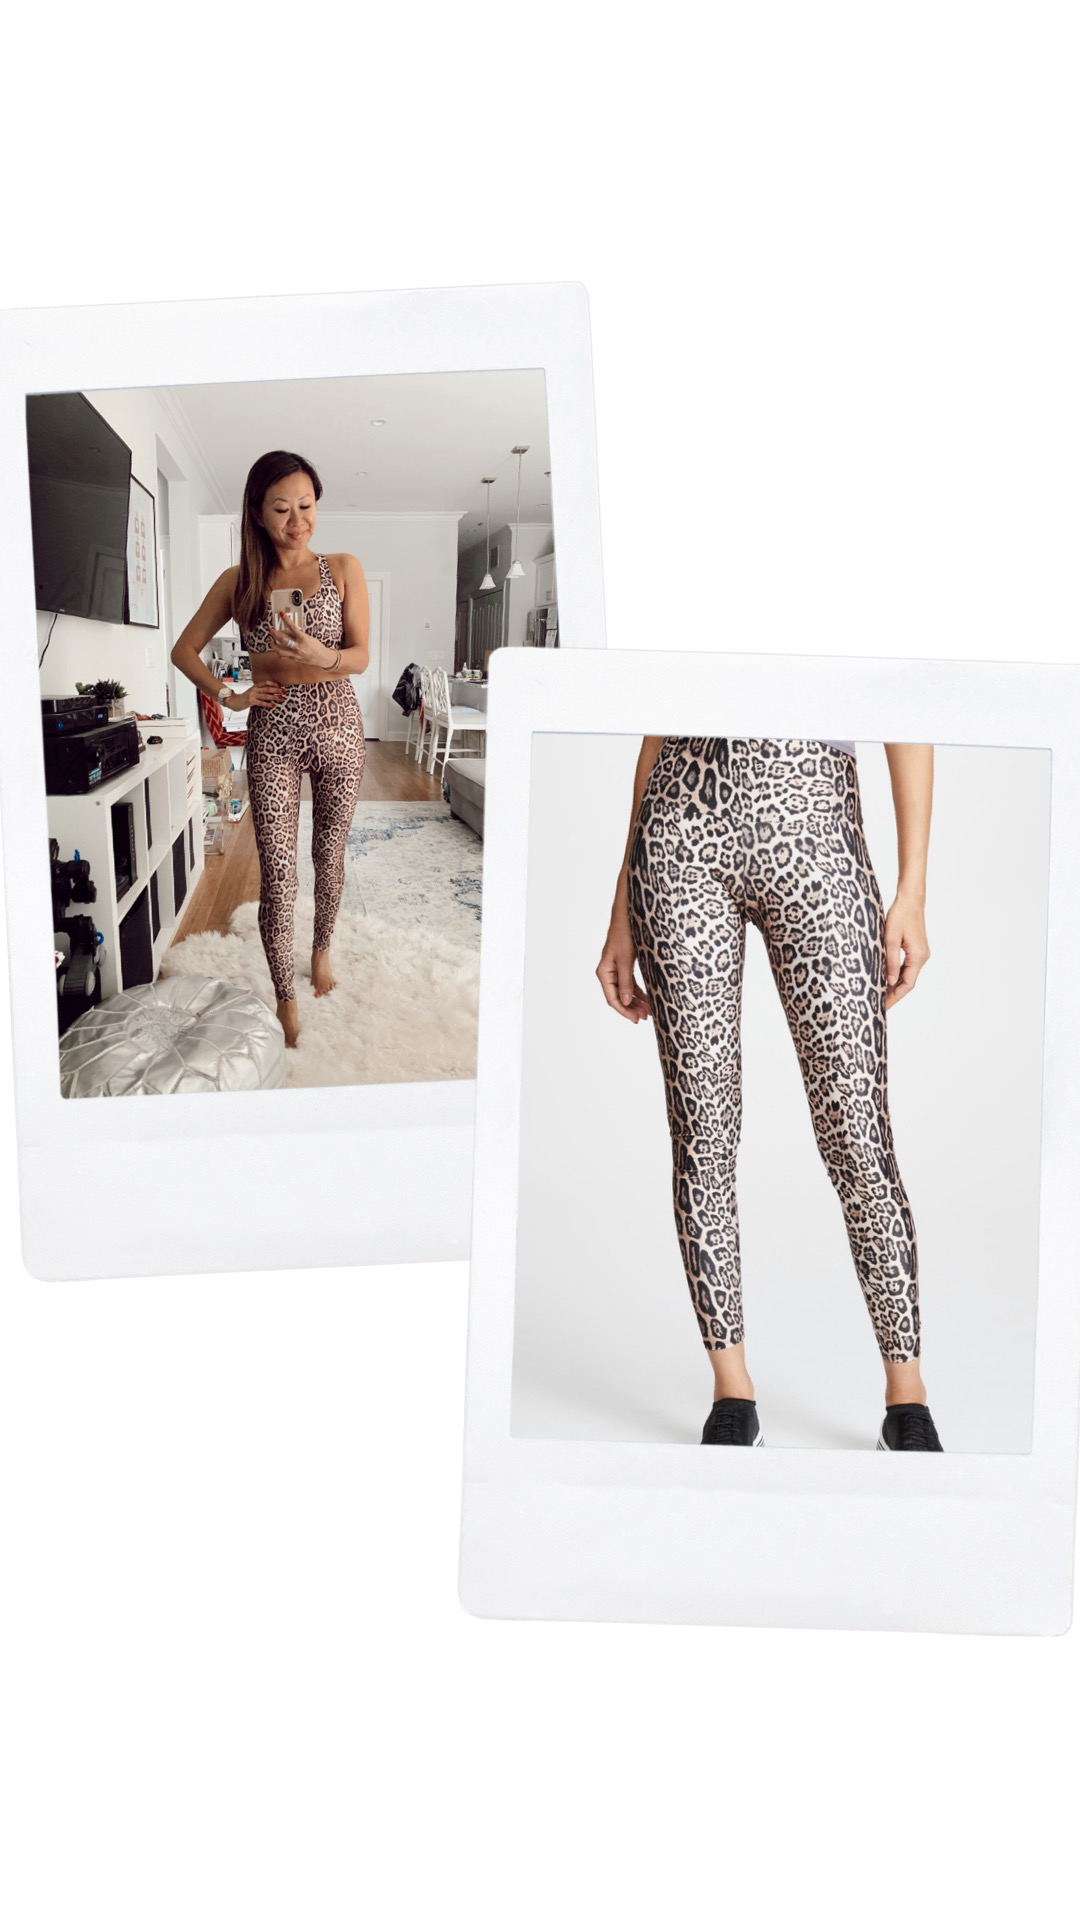 Onzie leopard leggings and sports bra, cute leopard print workout set, high waisted leggings and sports bra, leopard leggings, leopard sports bra, shopbop picks, shopbop sale, spring workout outfit ideas, workout style, workout outfit, yoga outfit